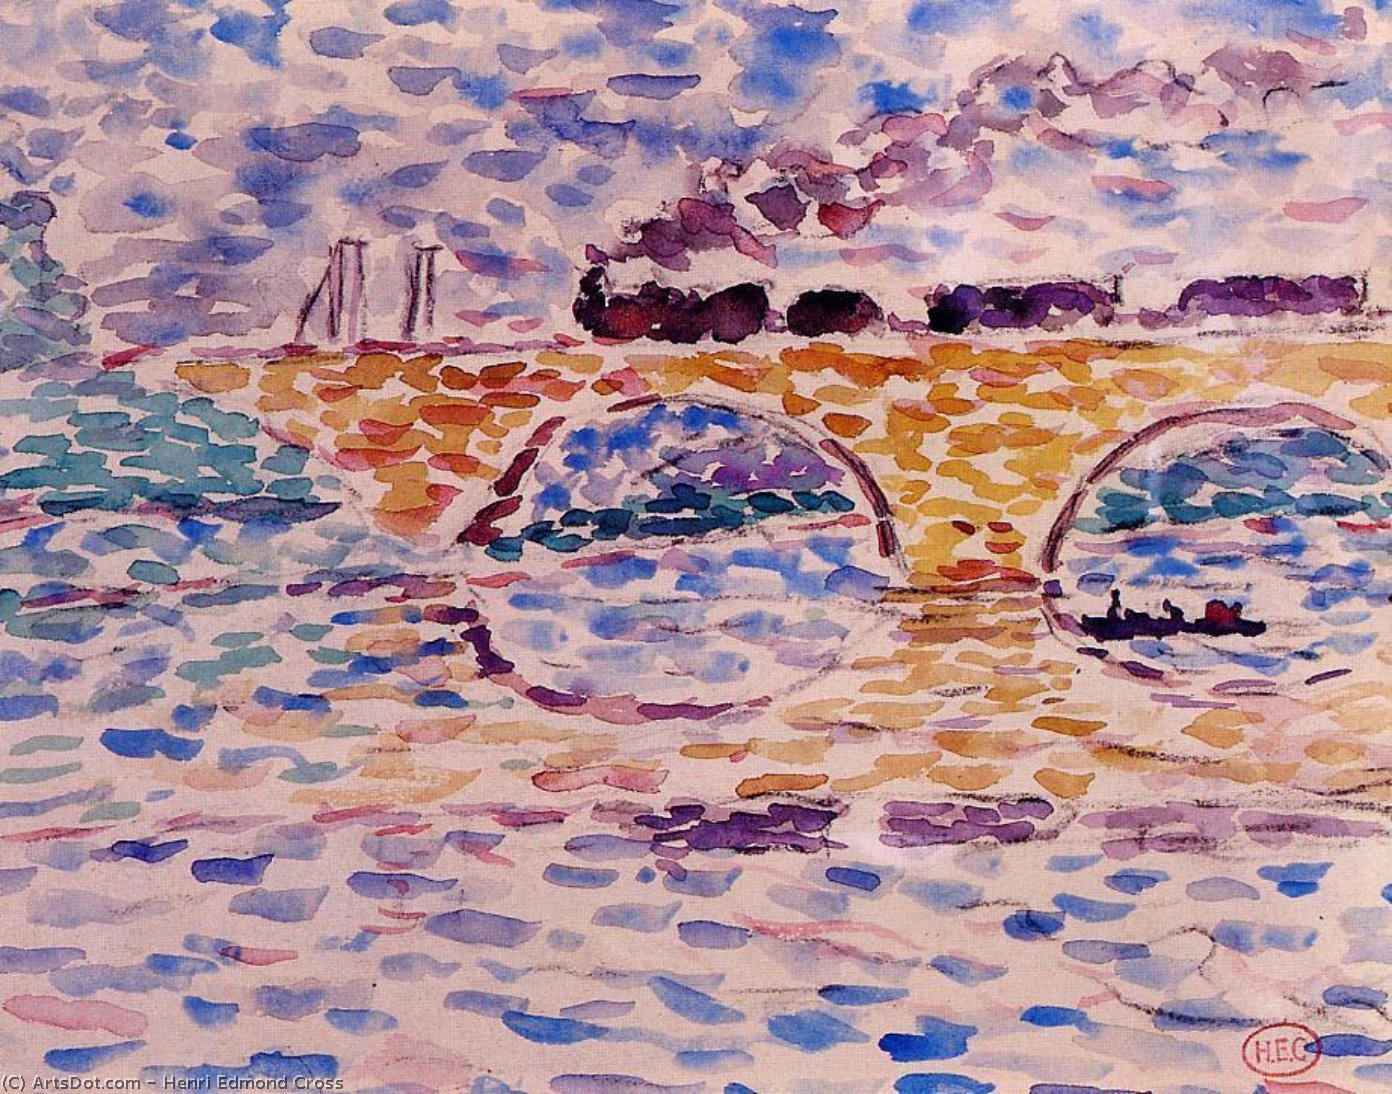 Il viadotto, acquerello di Henri Edmond Cross (1856-1910, France)